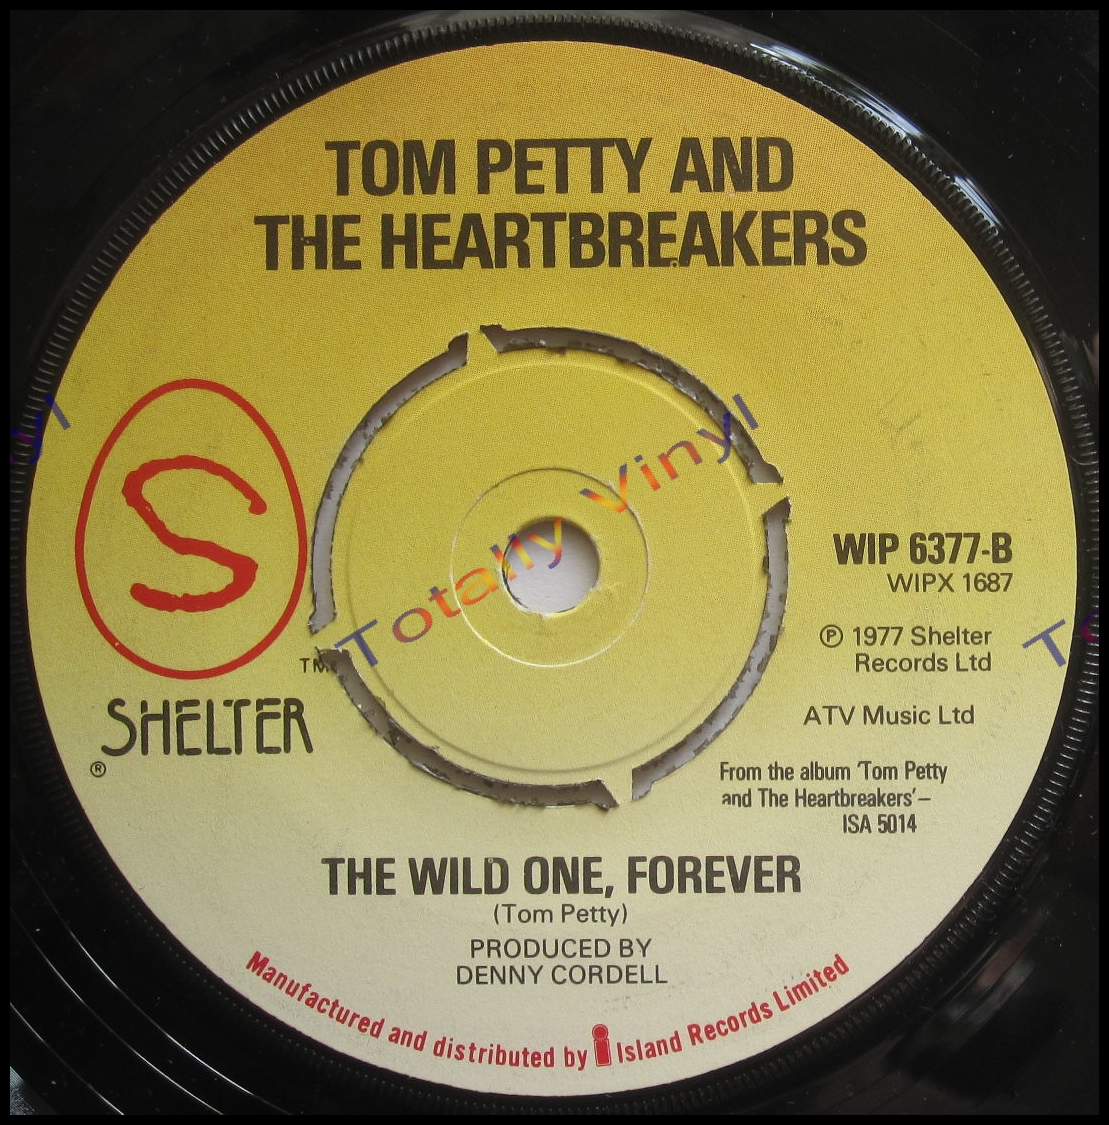 Totally Vinyl Records Petty And The Heartbreakers Tom